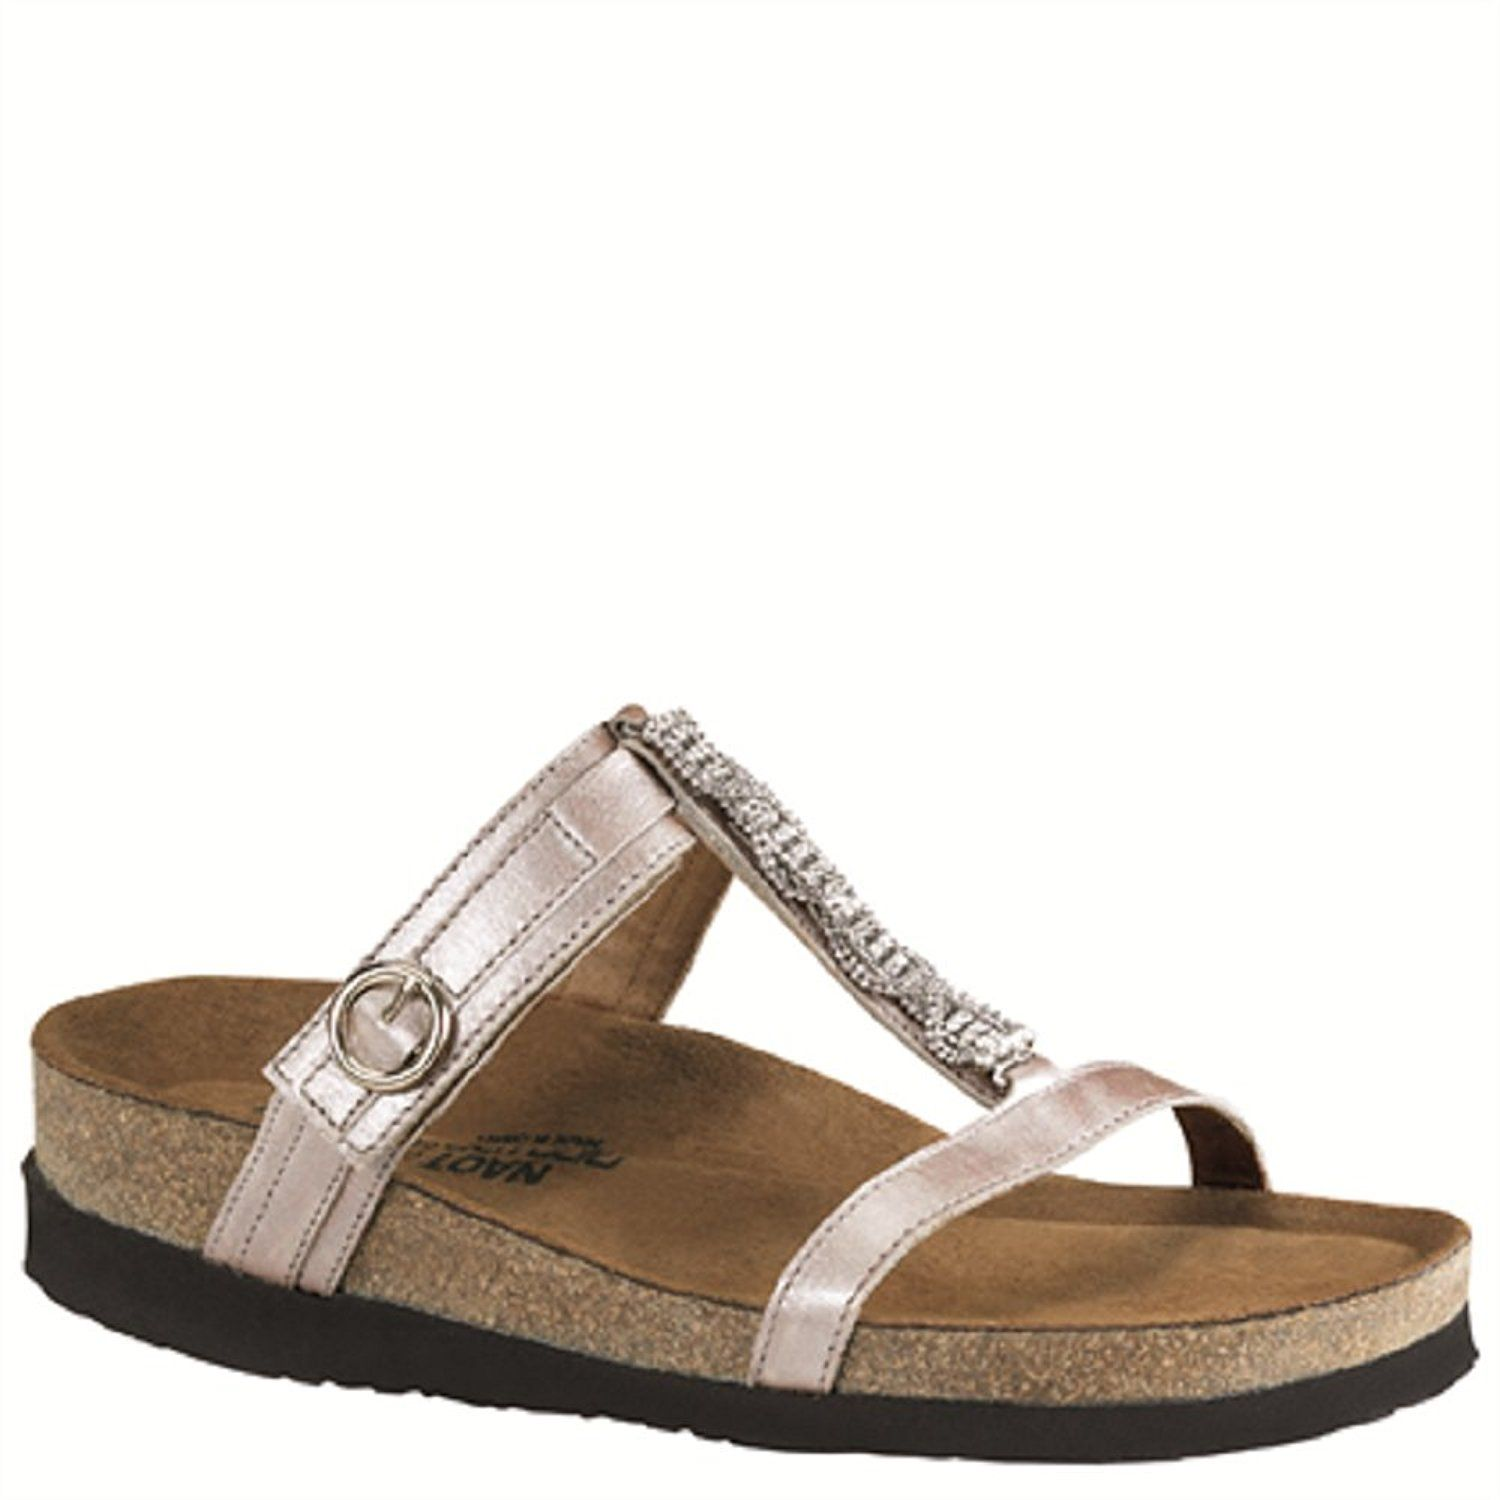 c65c5baa8411 Naot Footwear Women s Malibu Quartz Leather Sandal -- Hurry! Check out this  great item   Sandals